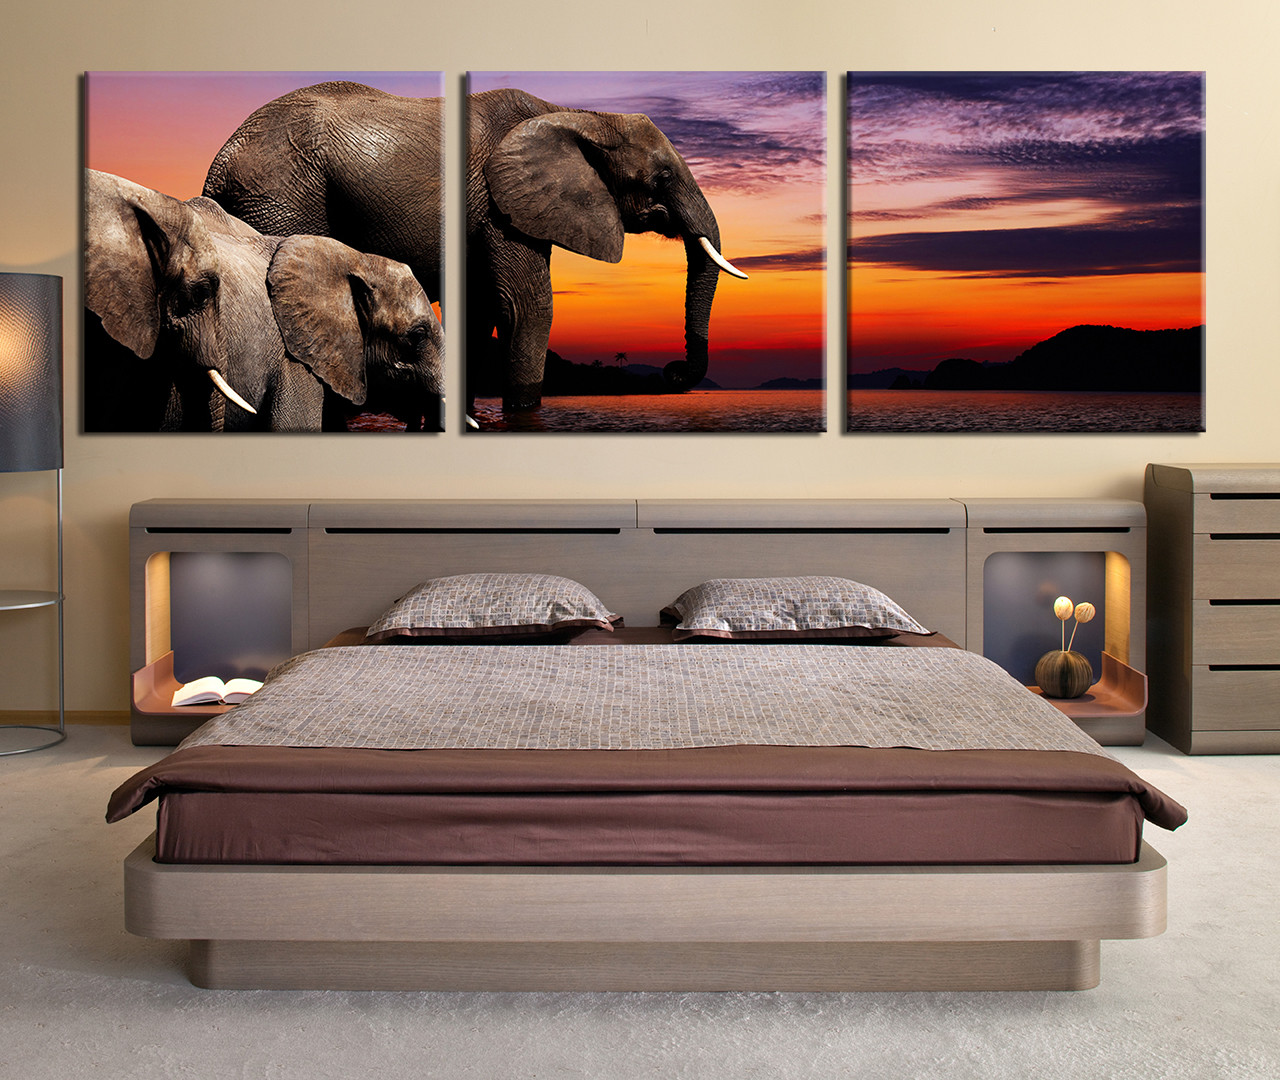 Elephant Wall Decor 3 piece canvas photography, elephant huge pictures, water wall art